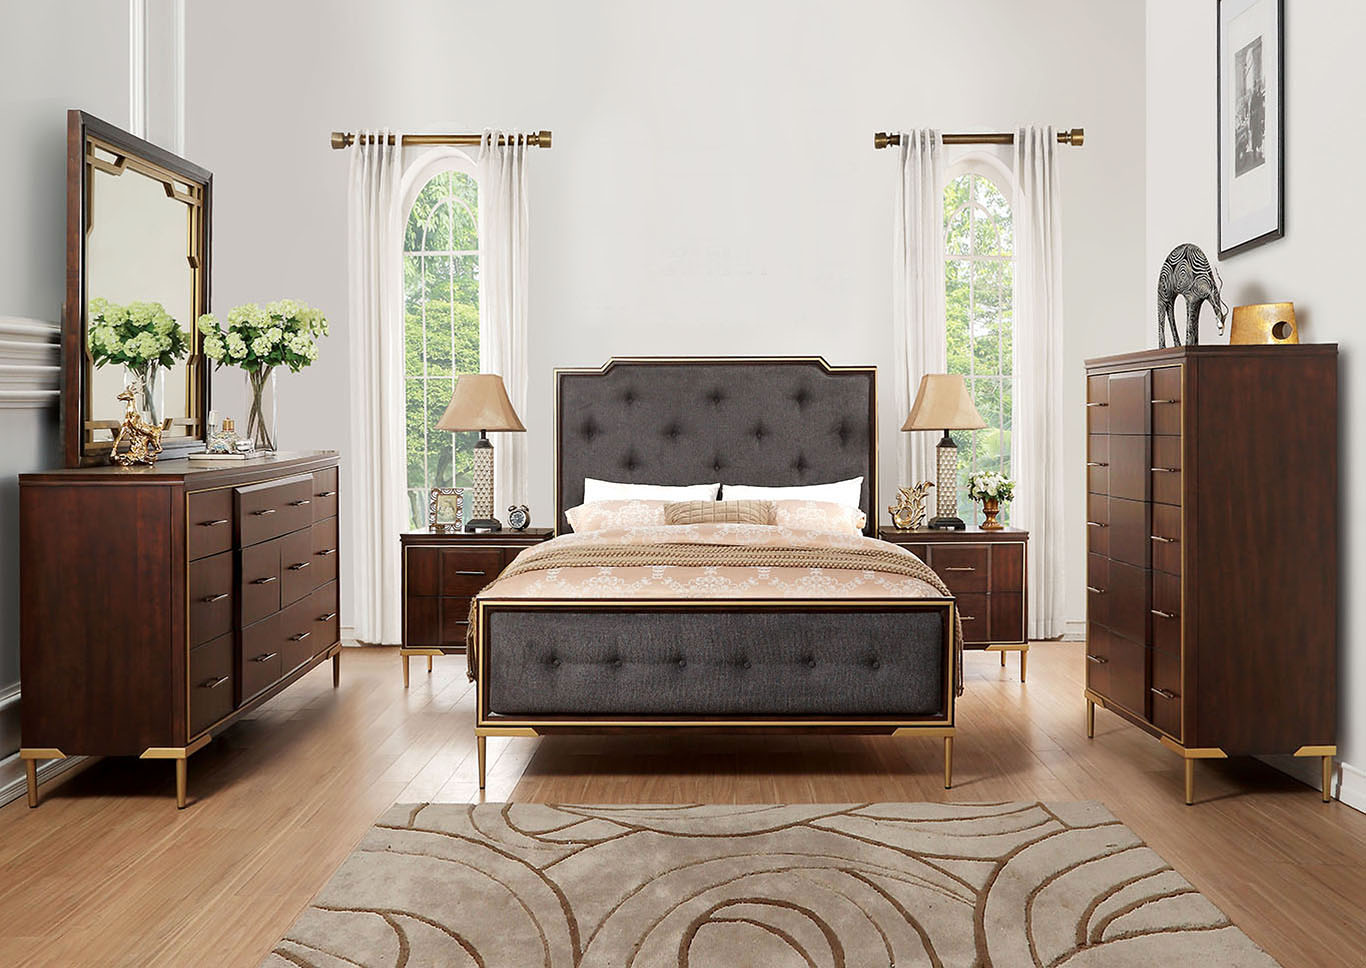 Eschenbach Brown/Cherry Upholstered Queen Panel Bed w/Dresser and Mirror,Acme